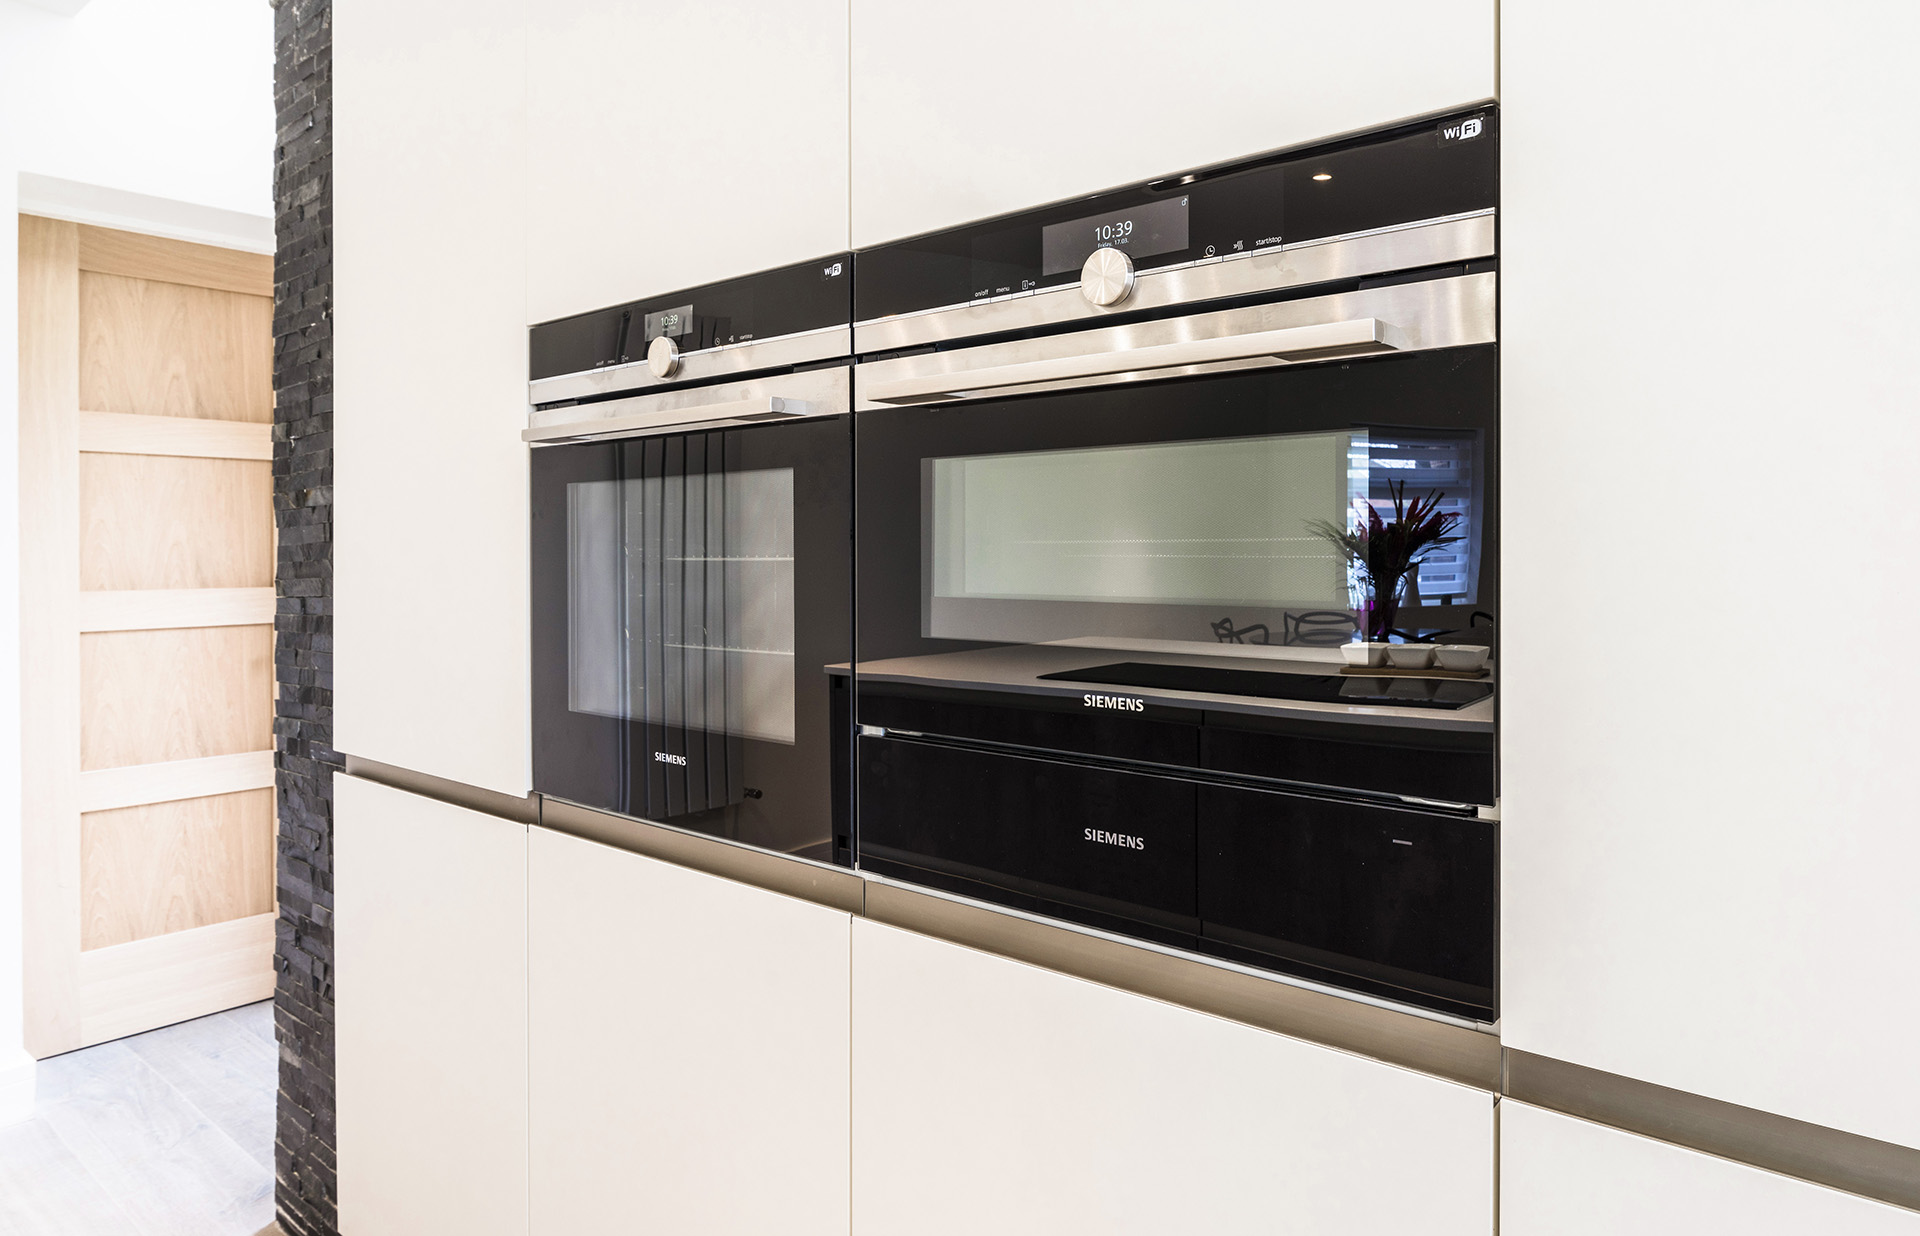 Appliance wall luxury German Kitchen installation Rempp